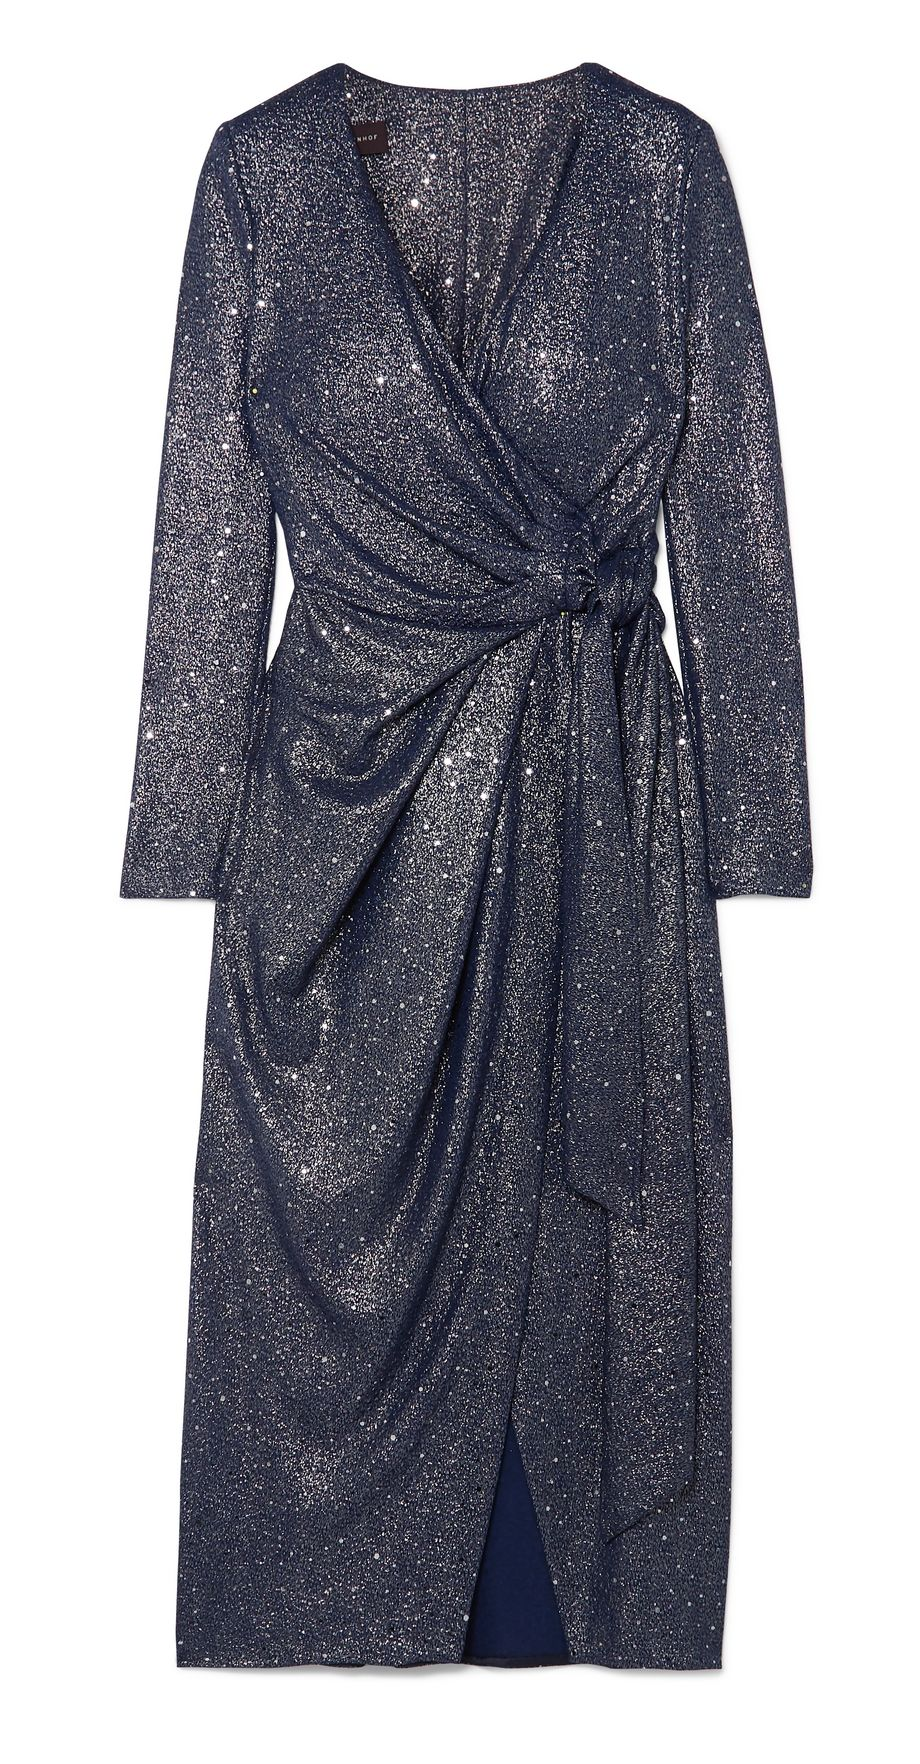 Talbot Runhof Botin sequin-embellished stretch-lamé wrap midi dress